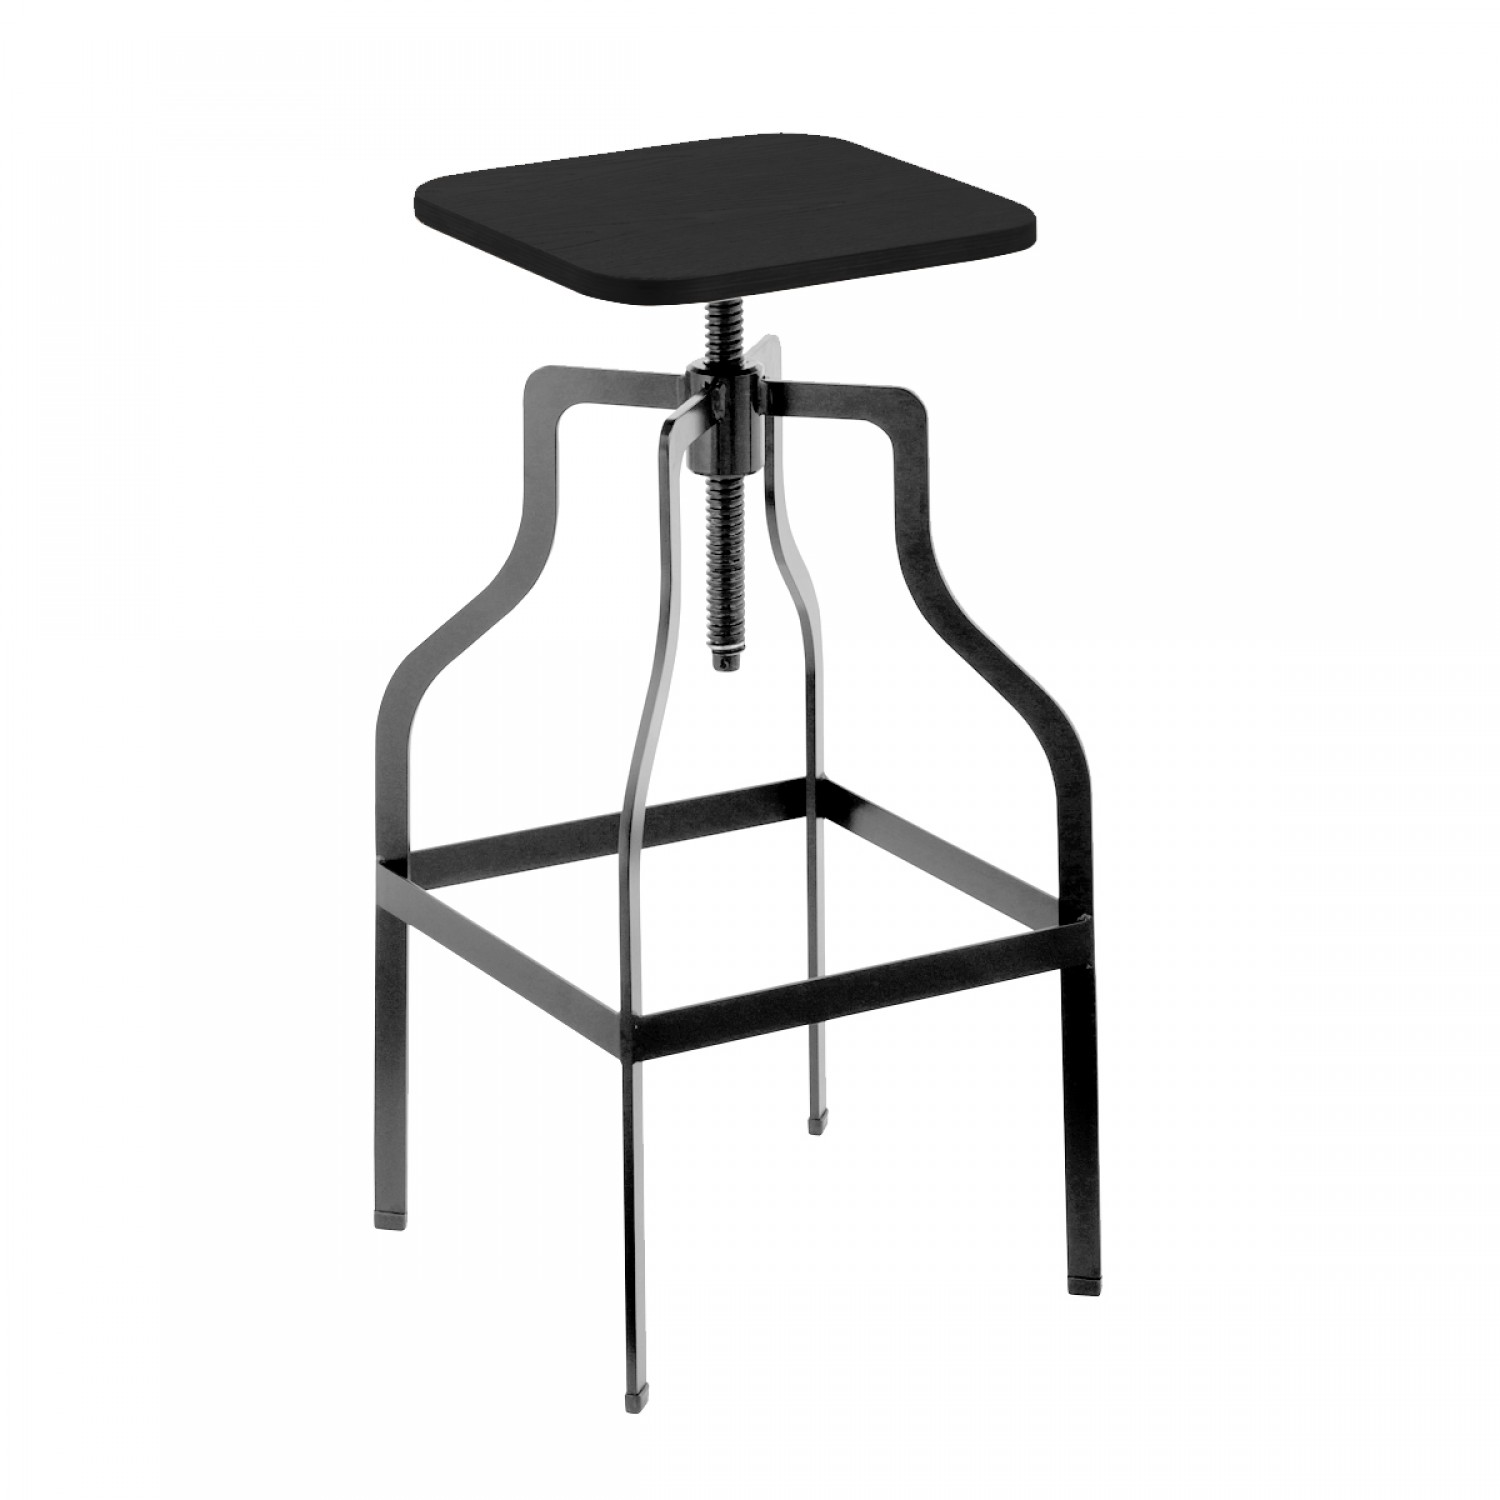 tabouret de bar vintage carr bois et m tal koya design. Black Bedroom Furniture Sets. Home Design Ideas